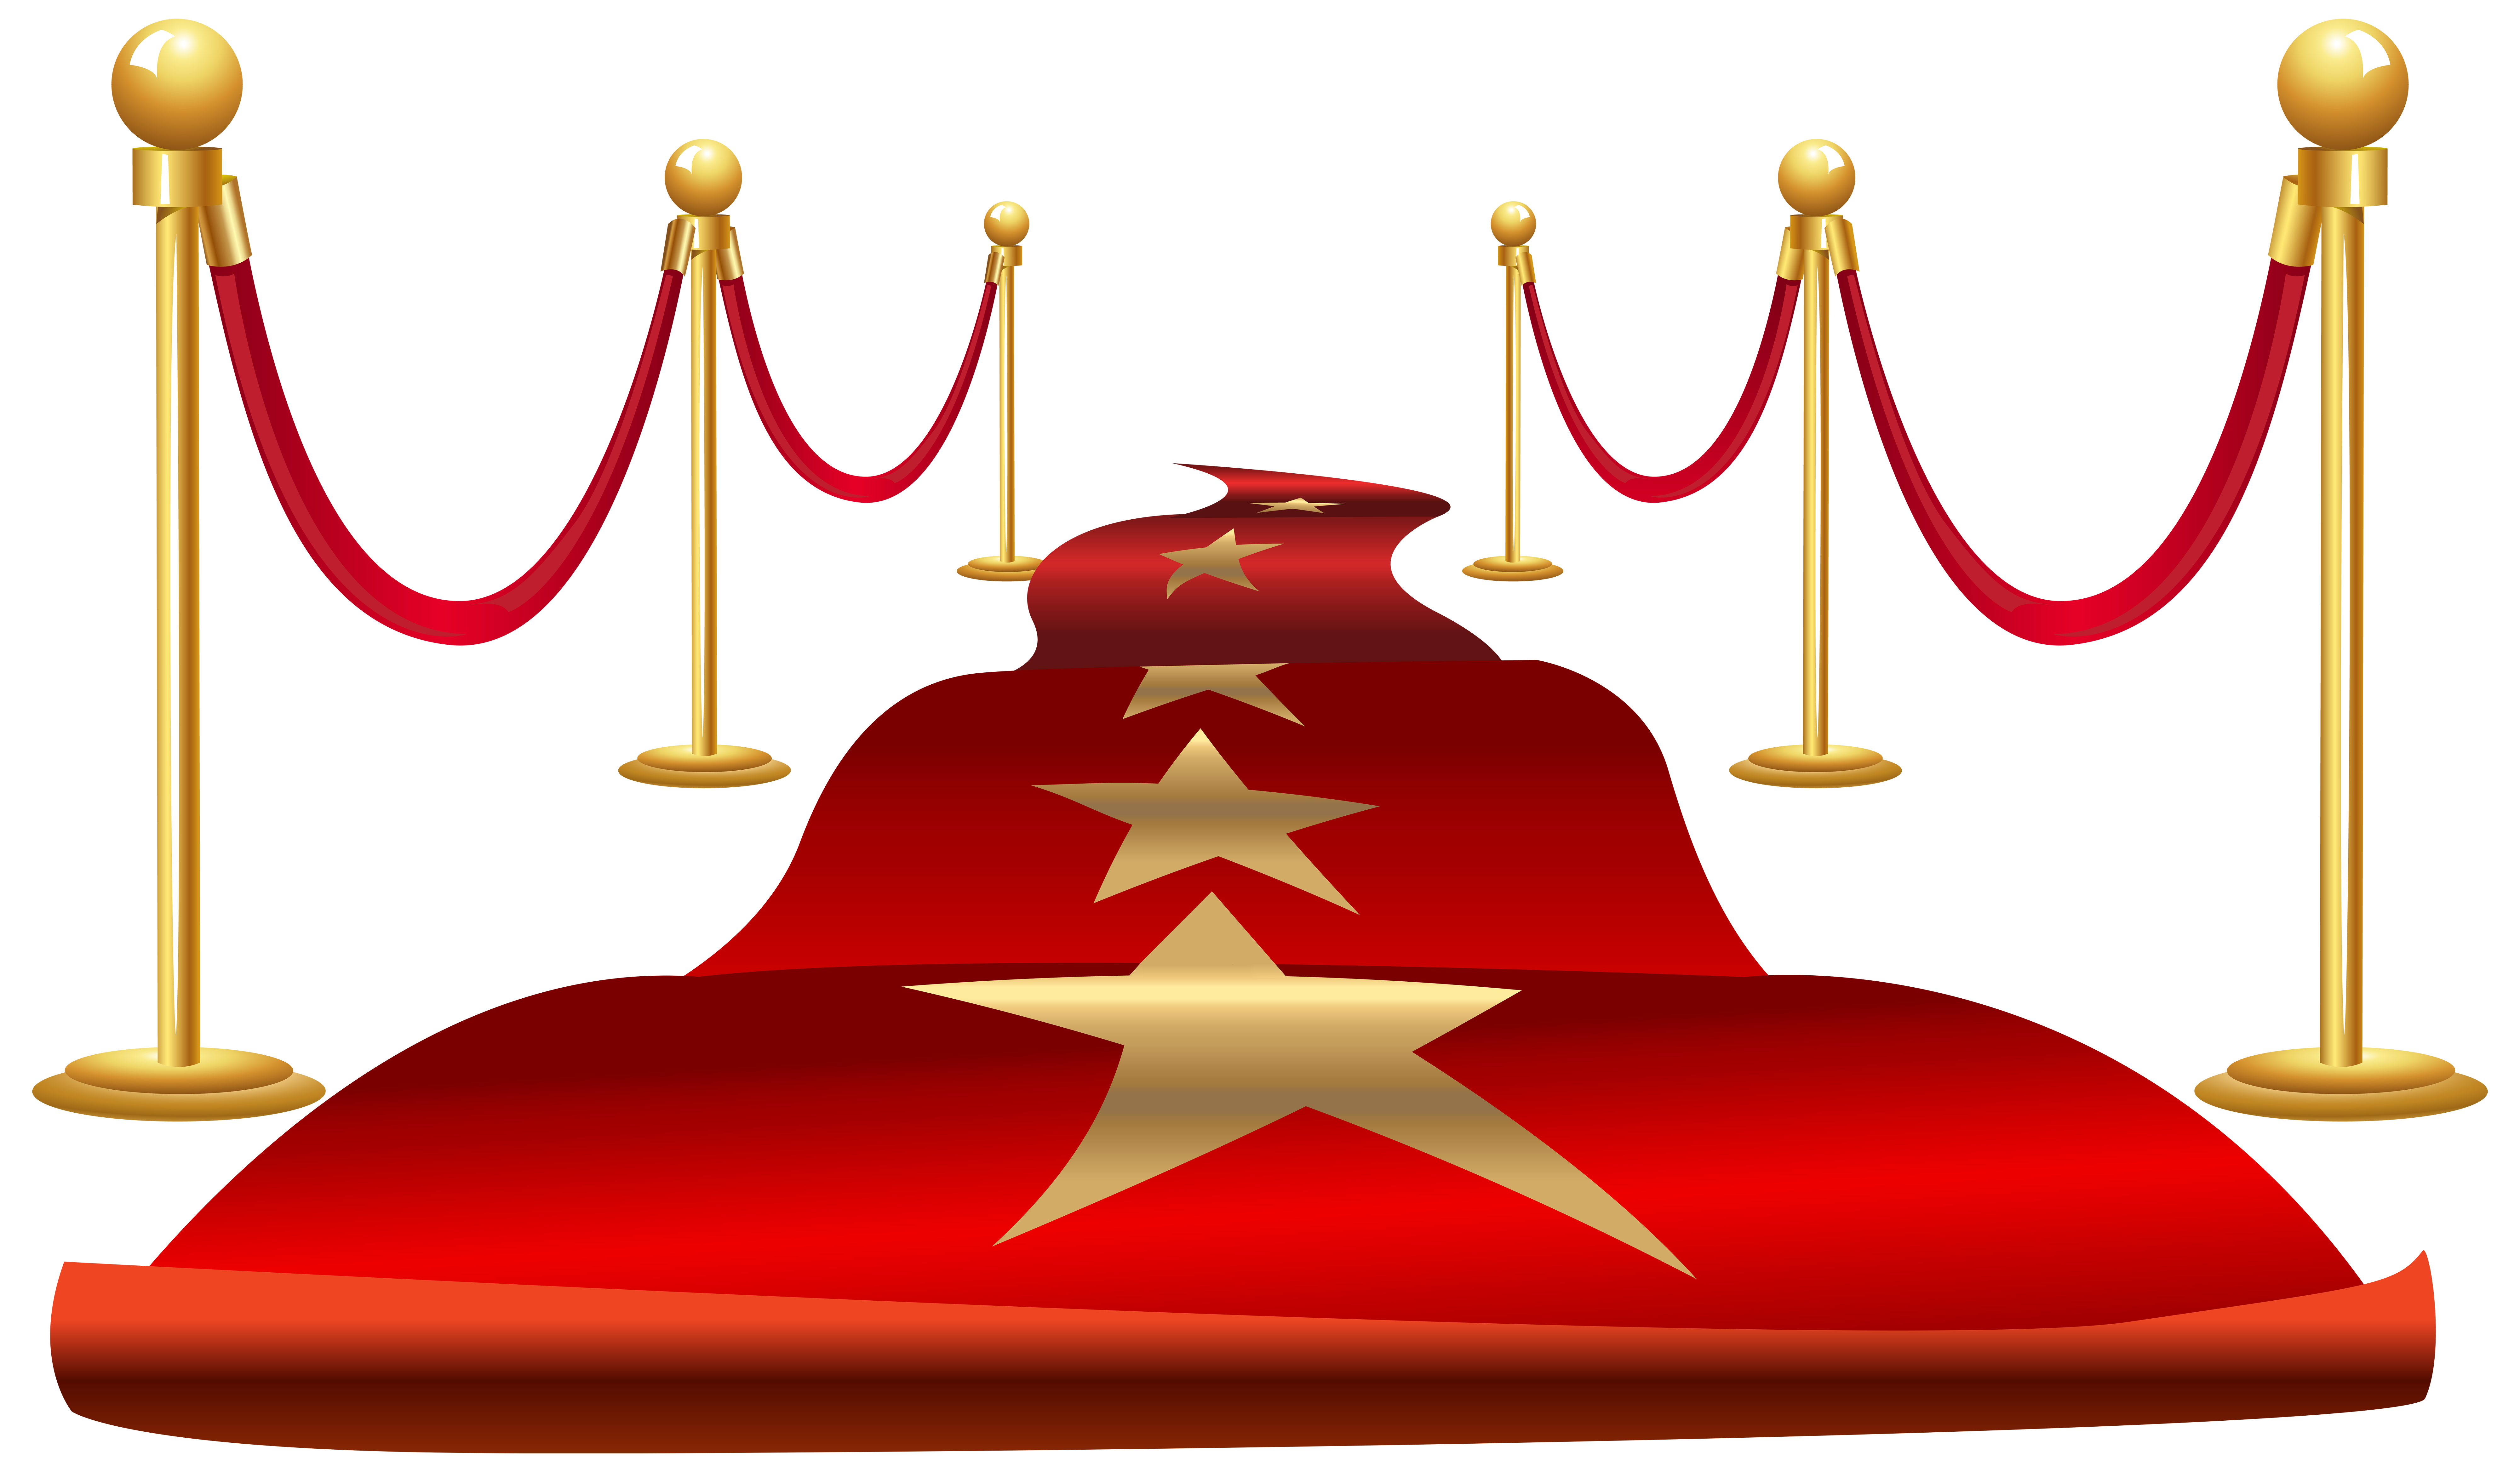 Movie star red carpet clipart svg black and white Red carpet Clip art - Cartoon five-pointed star red carpet 8000*4674 ... svg black and white